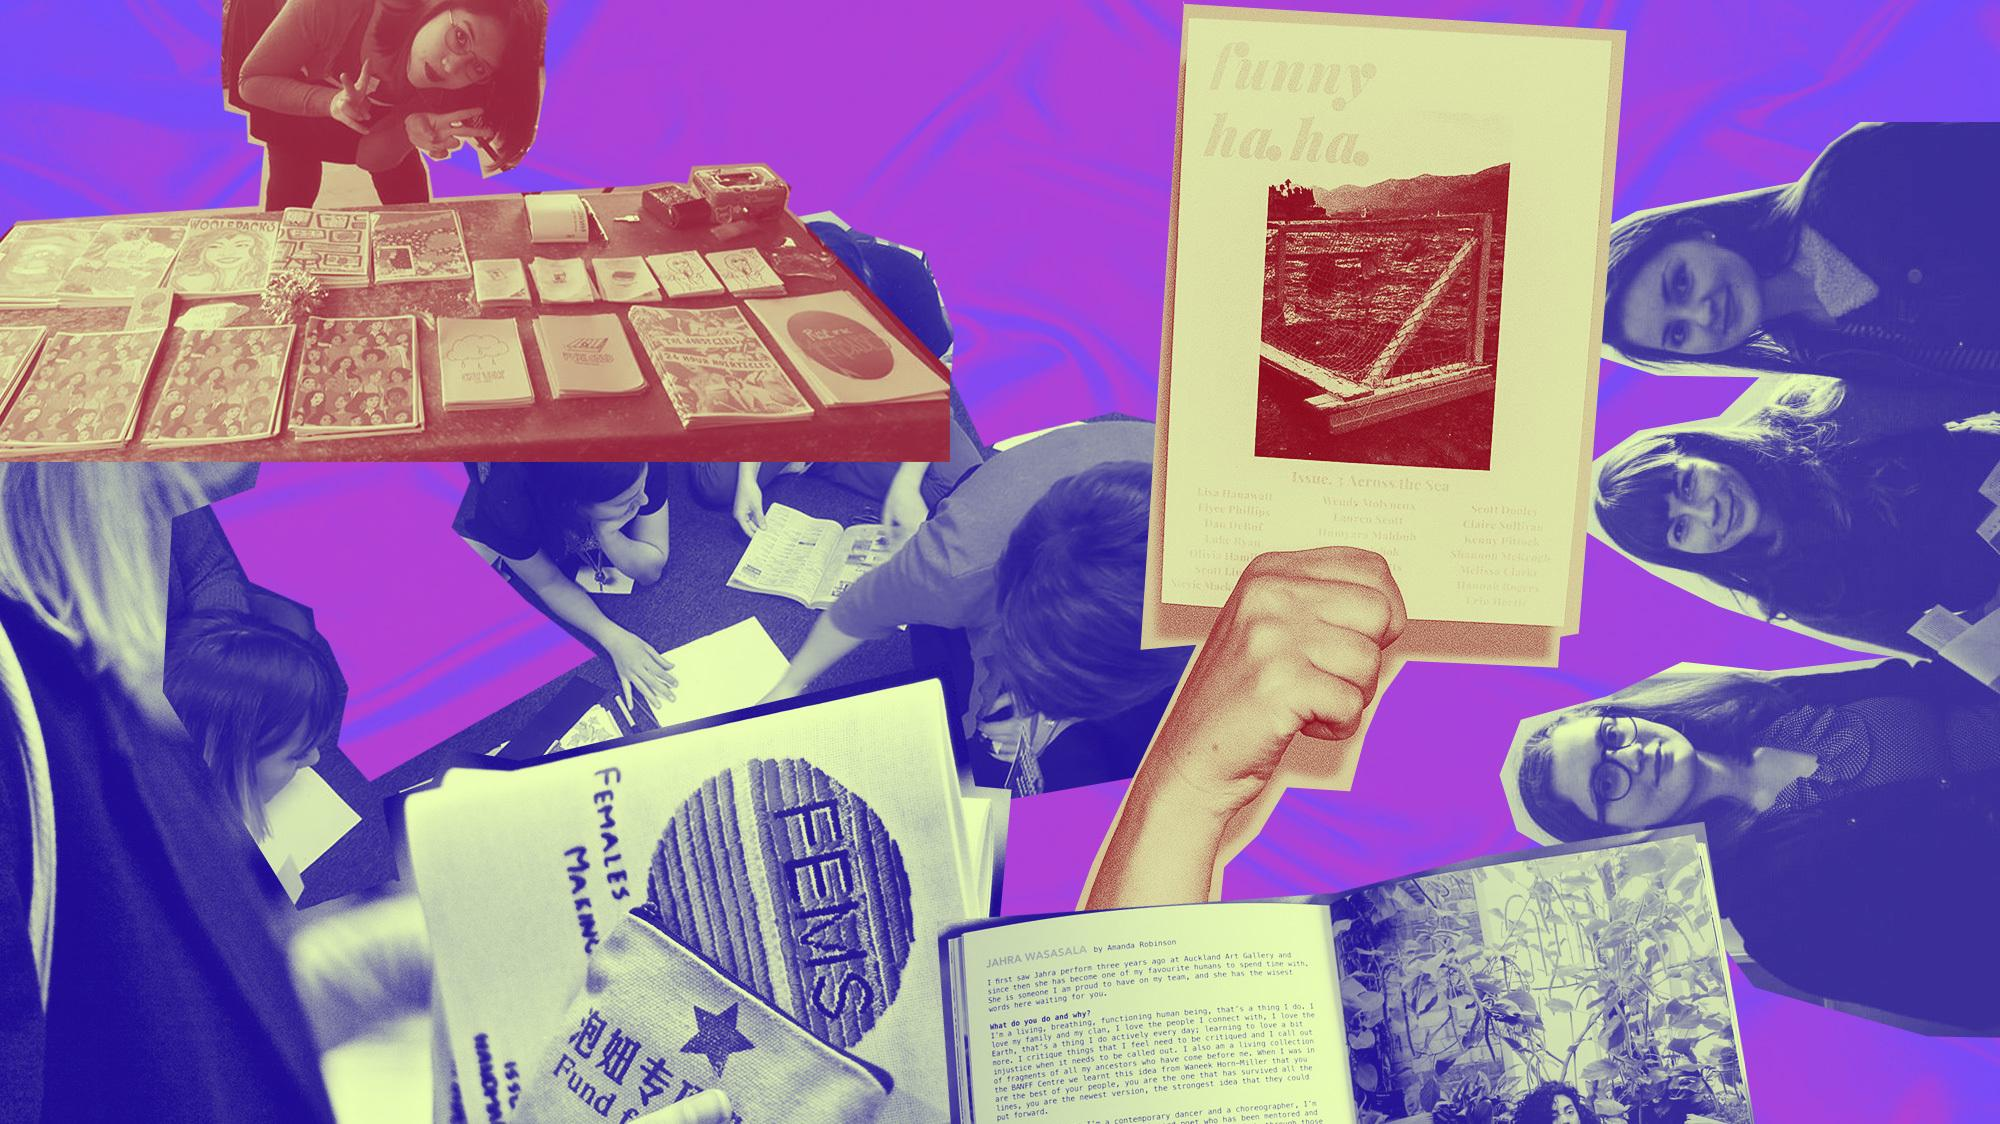 digital fatigue: why young women are returning to zines